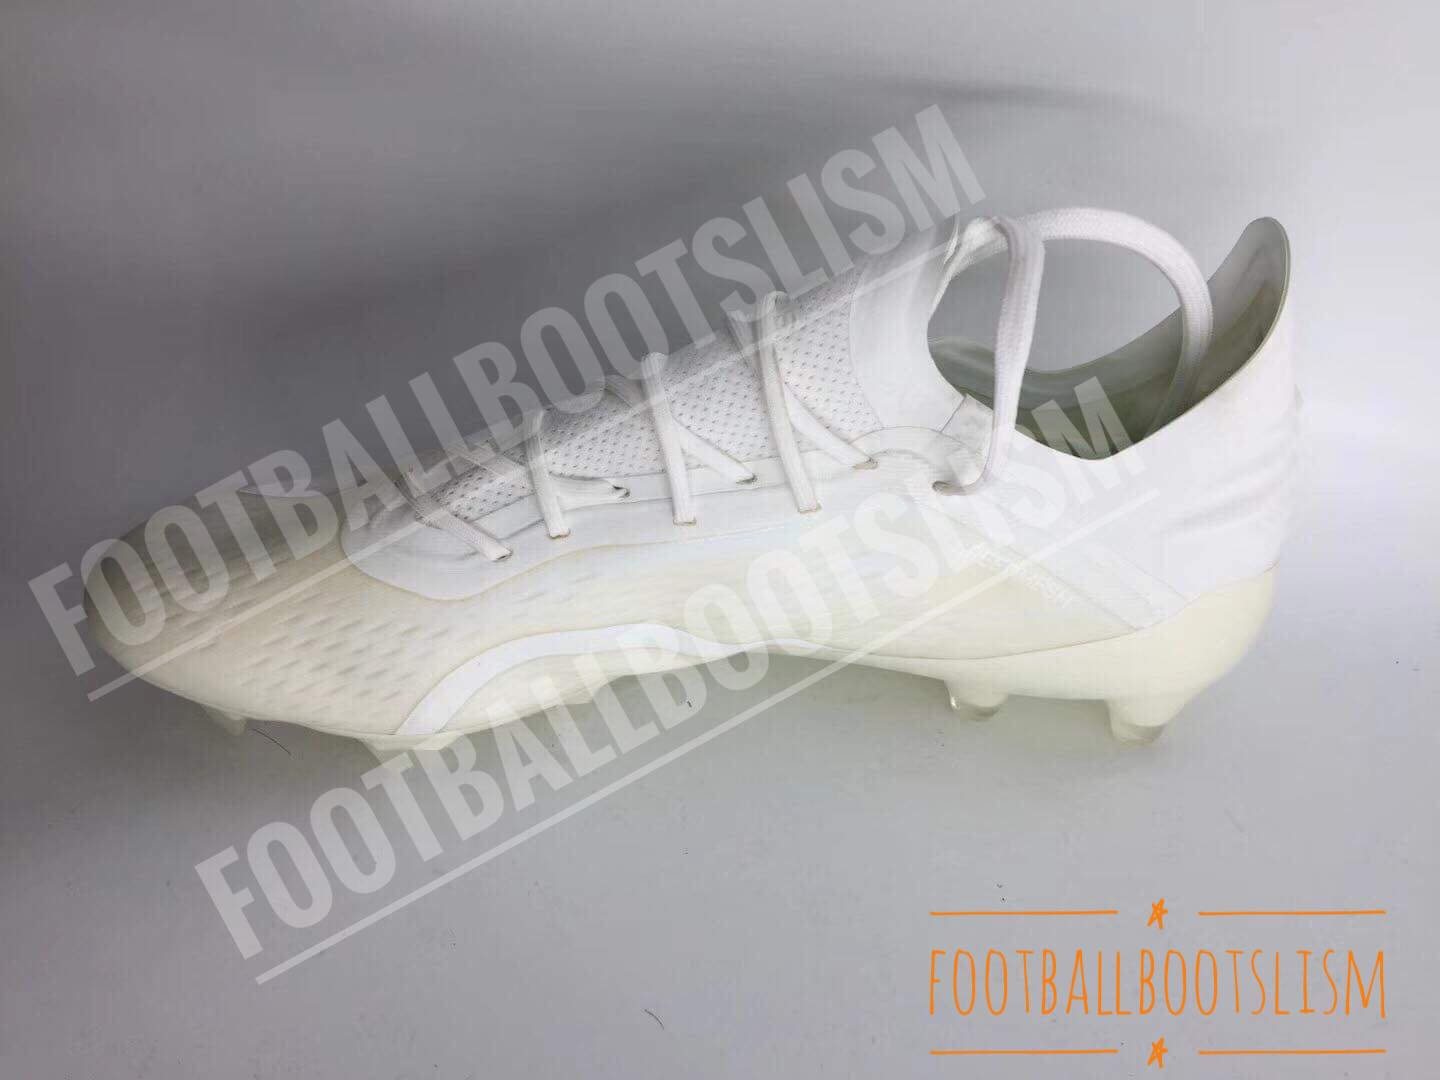 5ed64b7eb Tech-wise, the whiteout Adidas X 18 soccer cleats are the same as the  launch paint job. Made for ultimate speed, the Adidas X 18.1 soccer shoe  features a ...